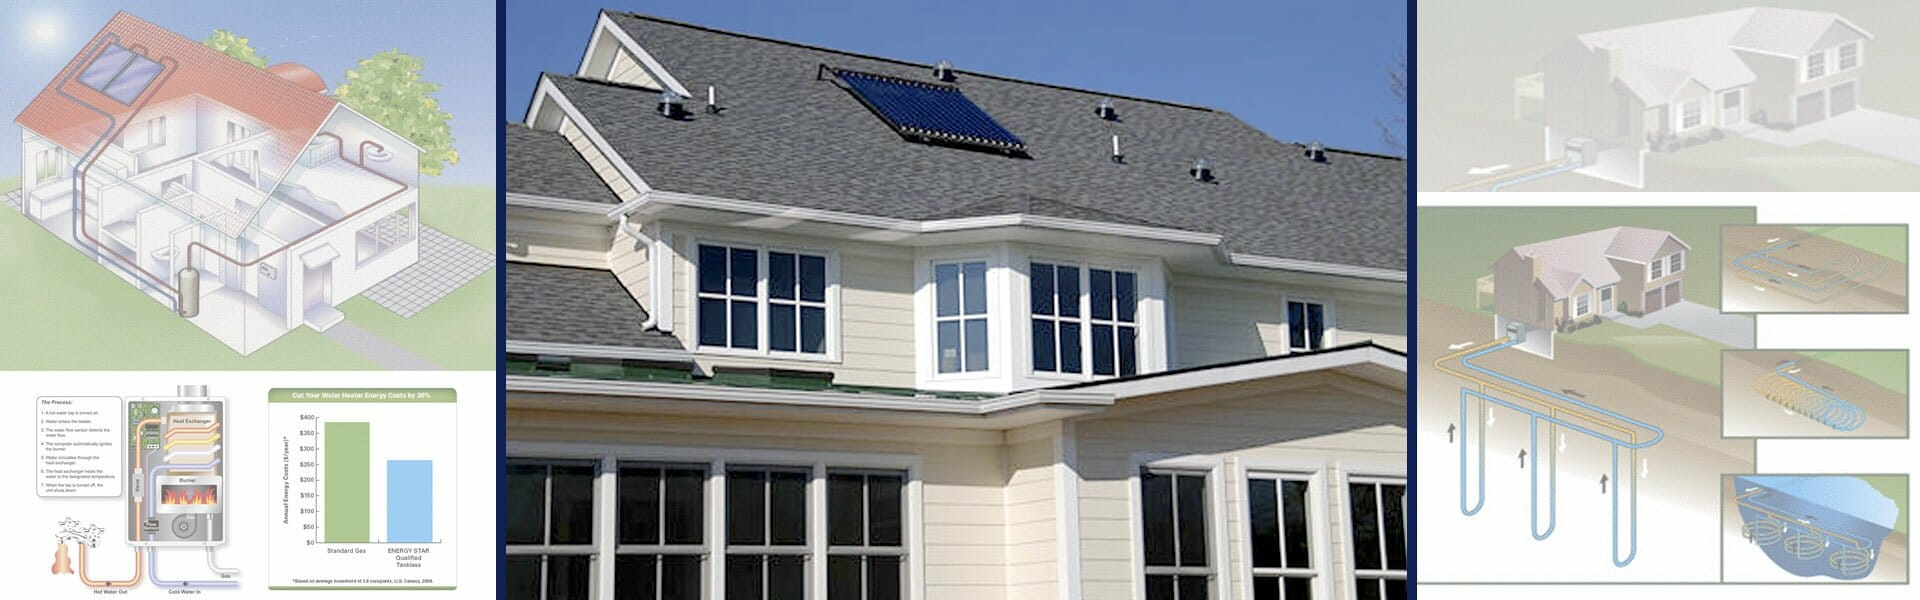 Golden Rule Builders green building energy star efficient warrenton fauquier middleburg